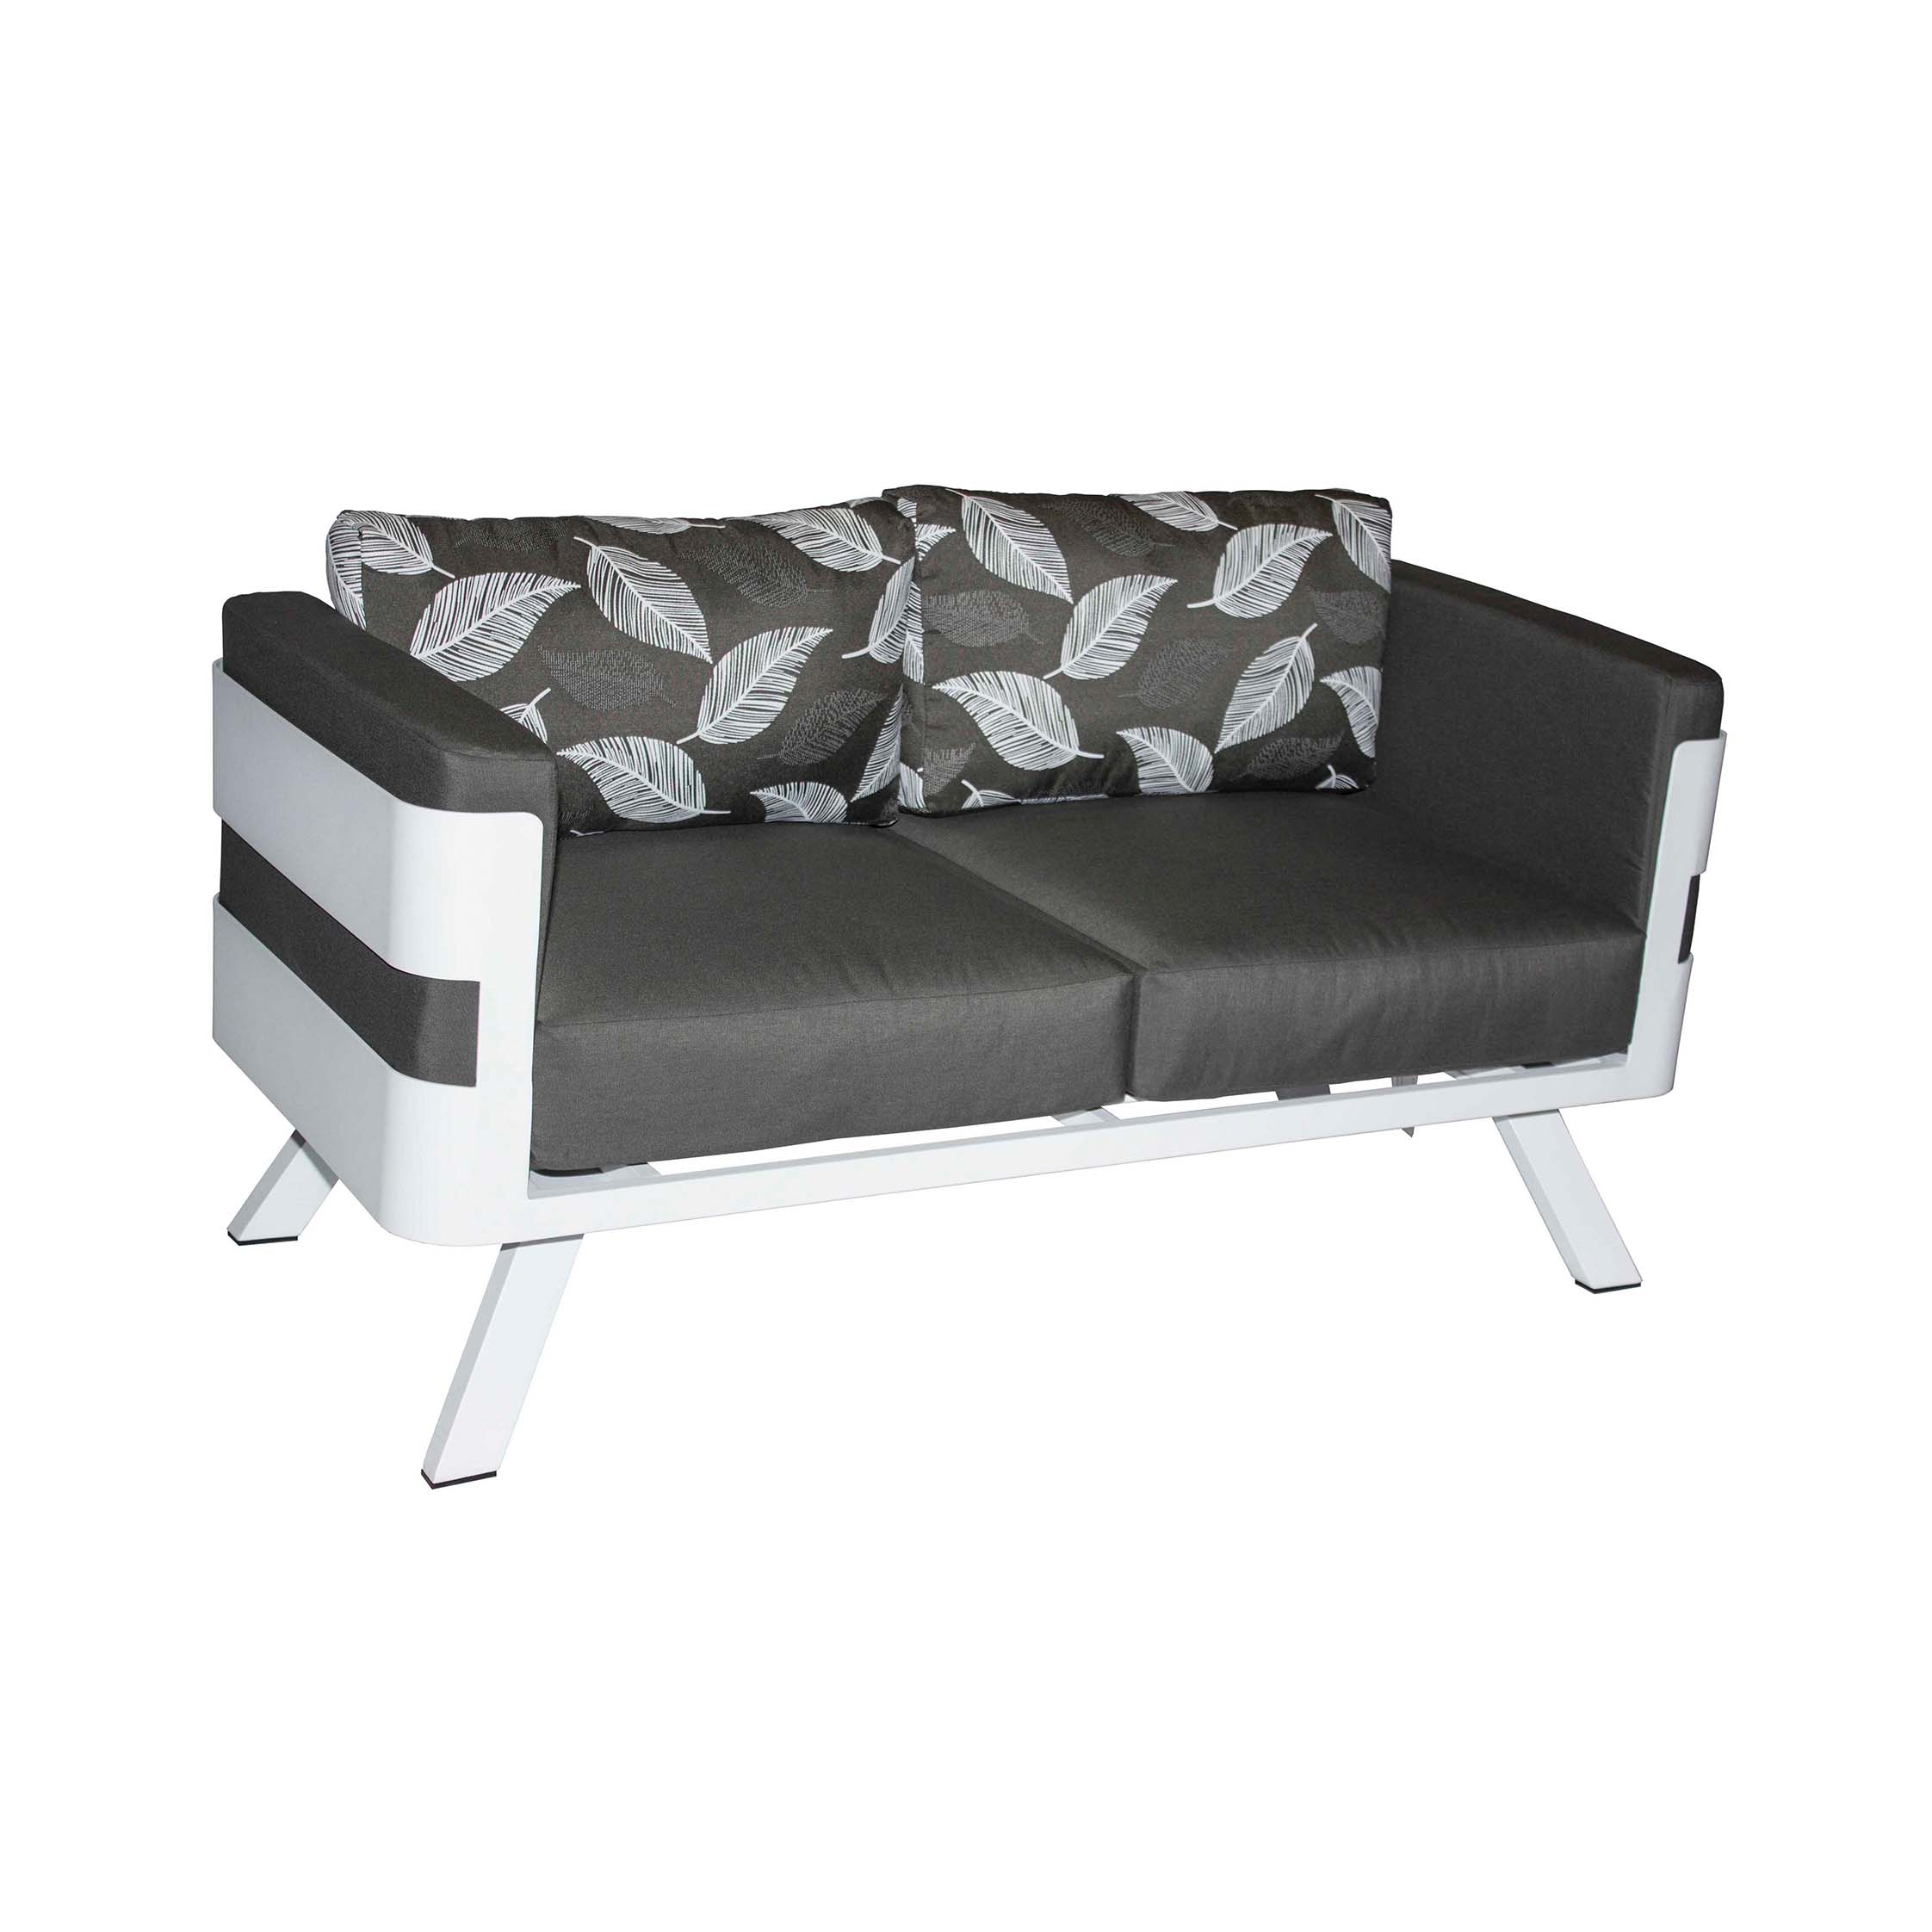 Lesotho 2 Seater Sofa | Patio Warehouse Within Allie Dark Grey Sofa Chairs (Image 12 of 20)